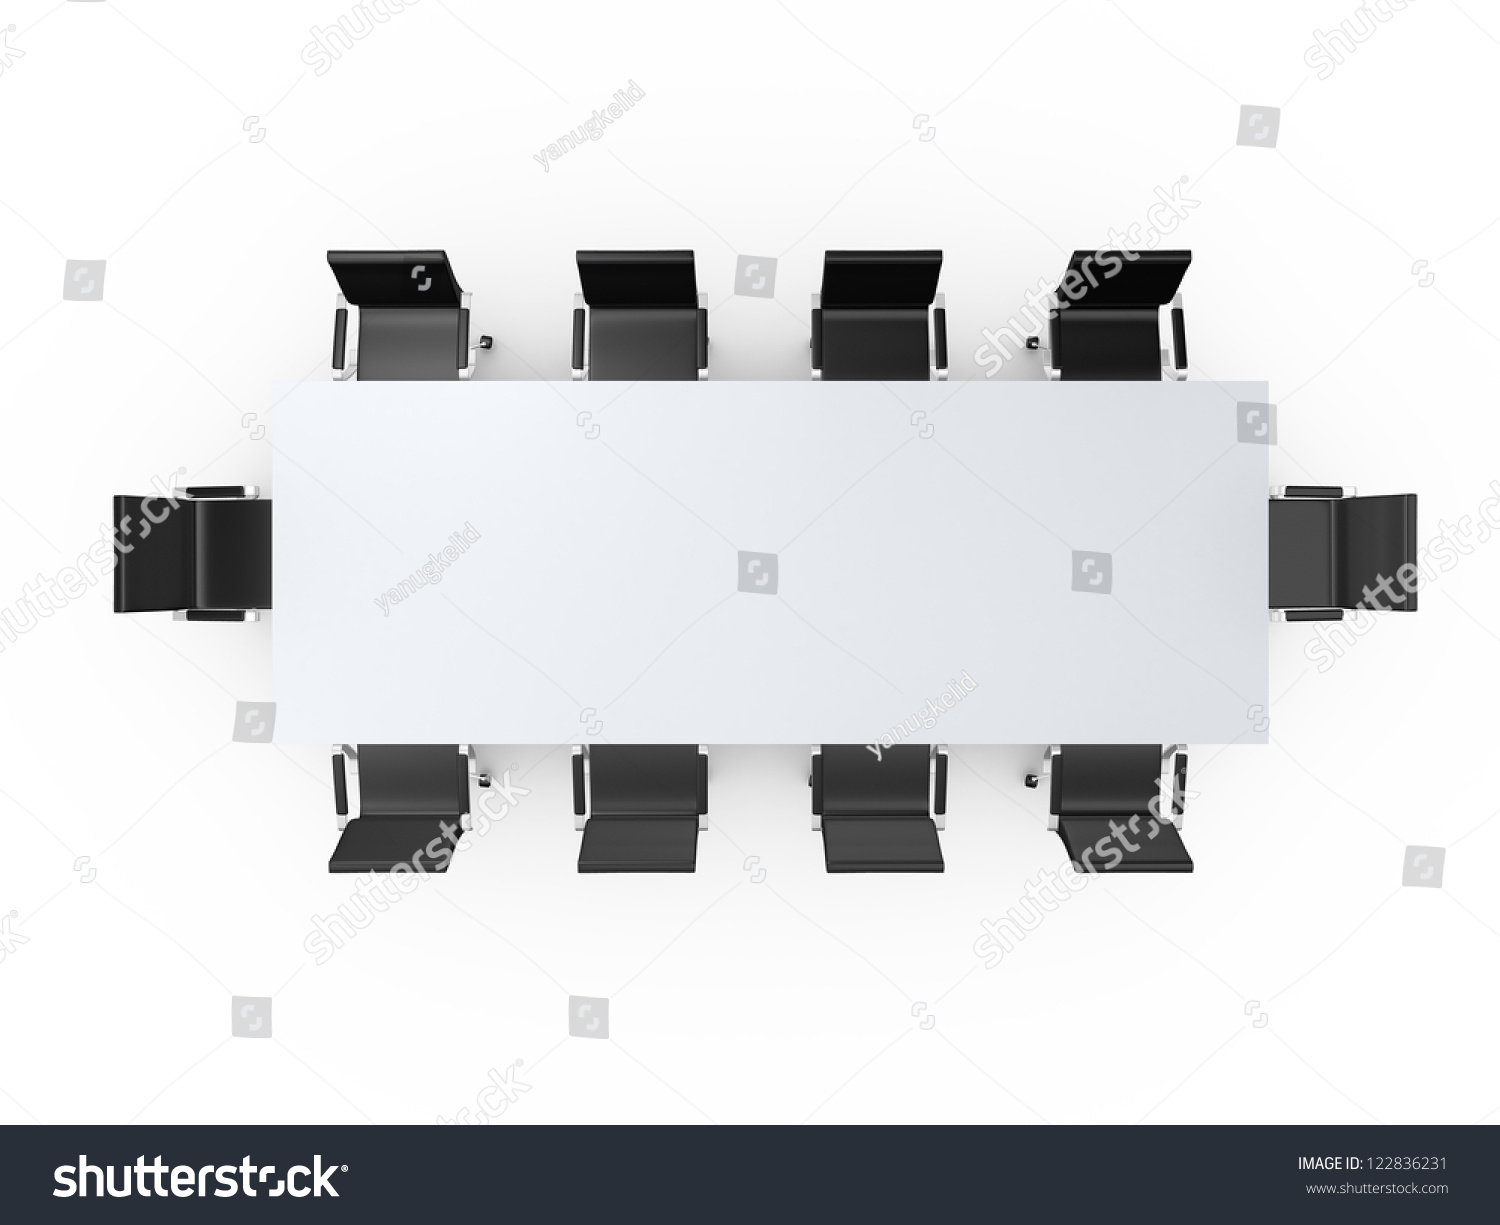 Table and chairs top view - Conference Table And Black Office Chairs In Meeting Room Top View Isolated On White